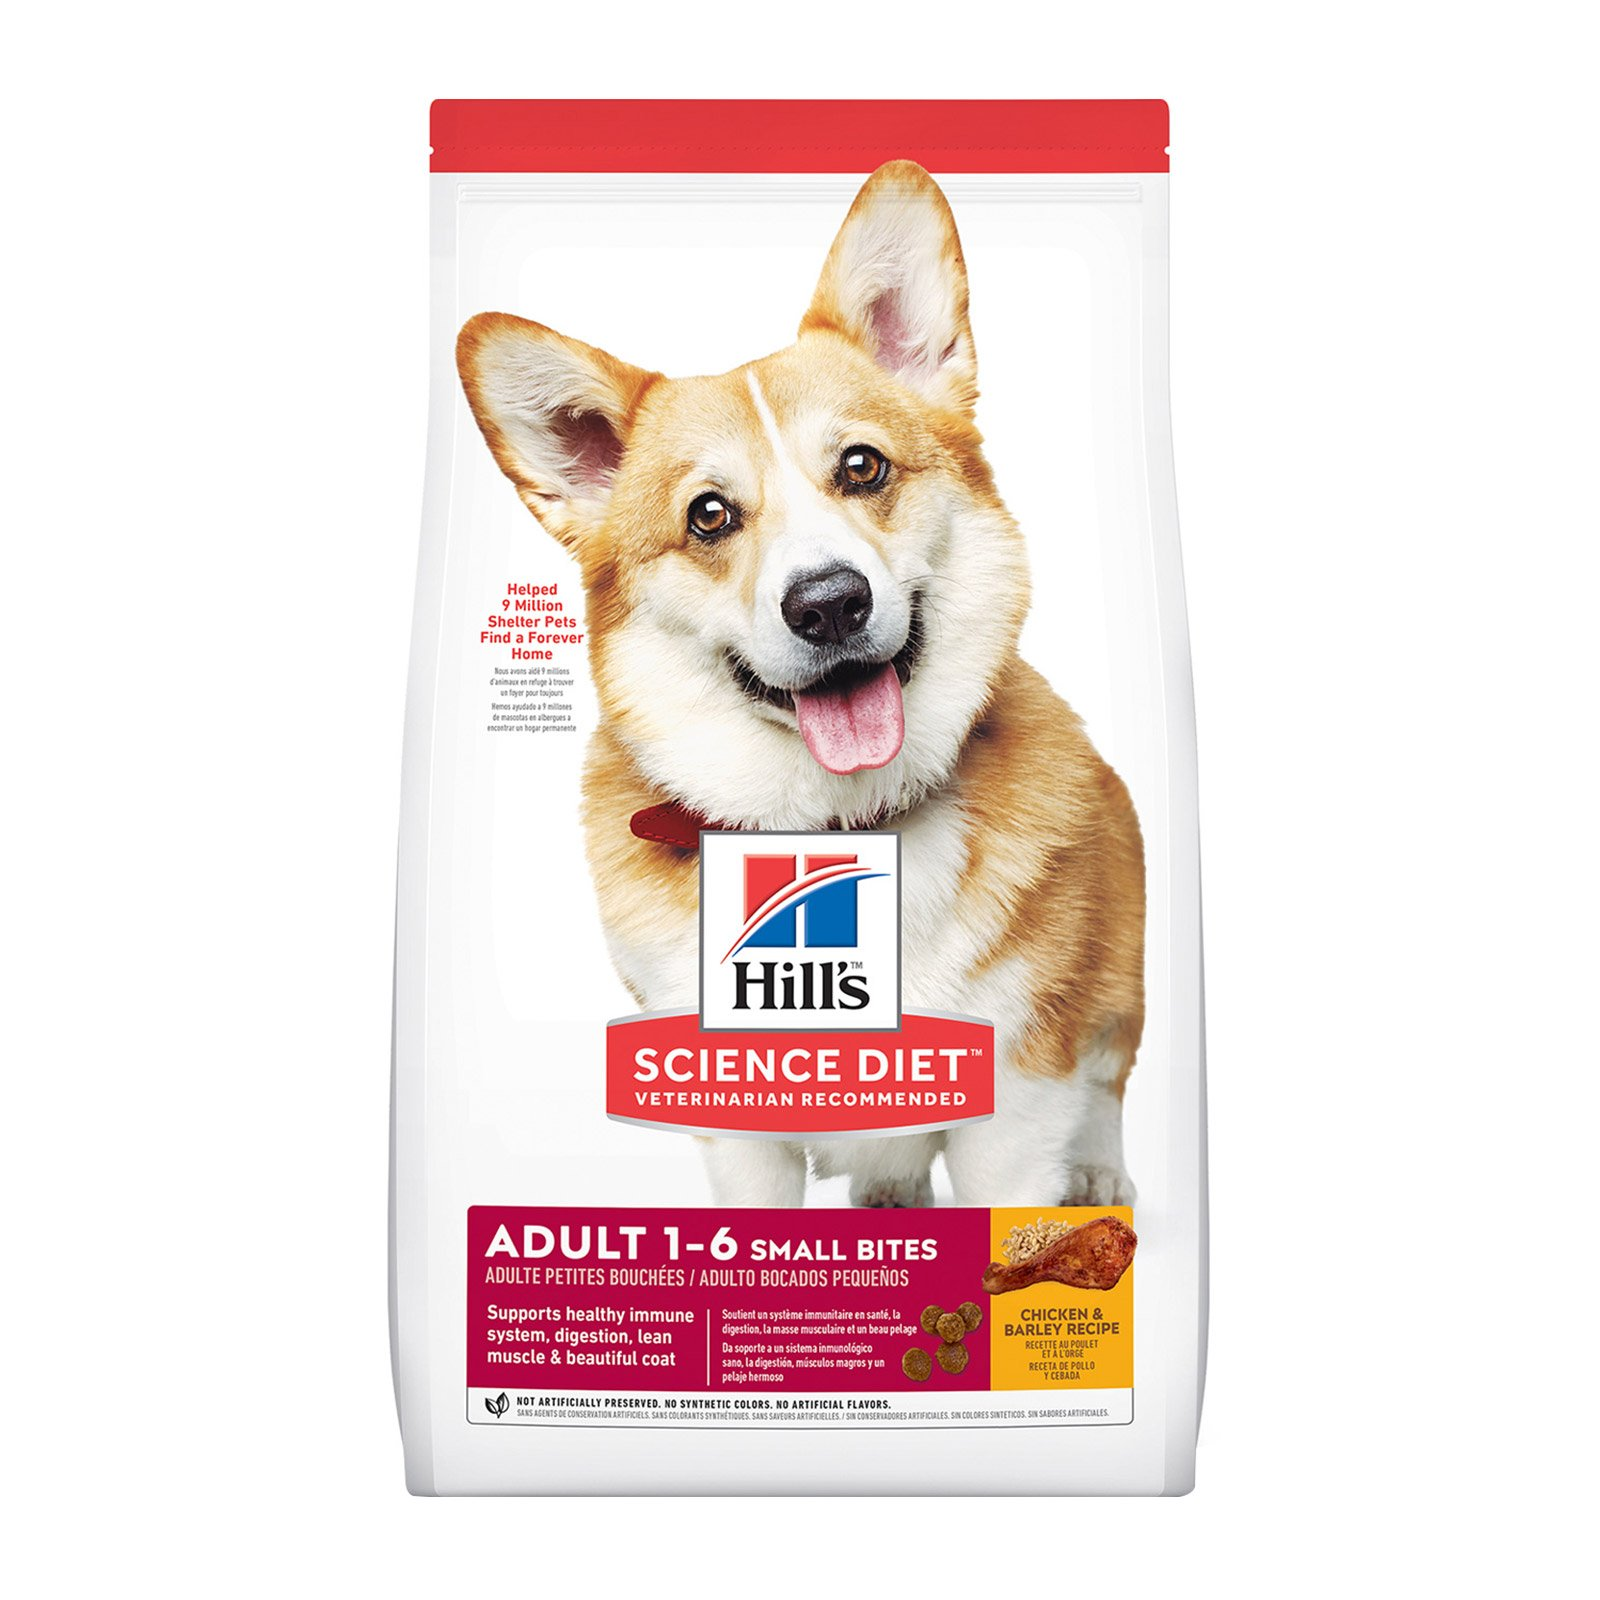 Hill's Science Diet Adult Small Bites Dry Dog Food